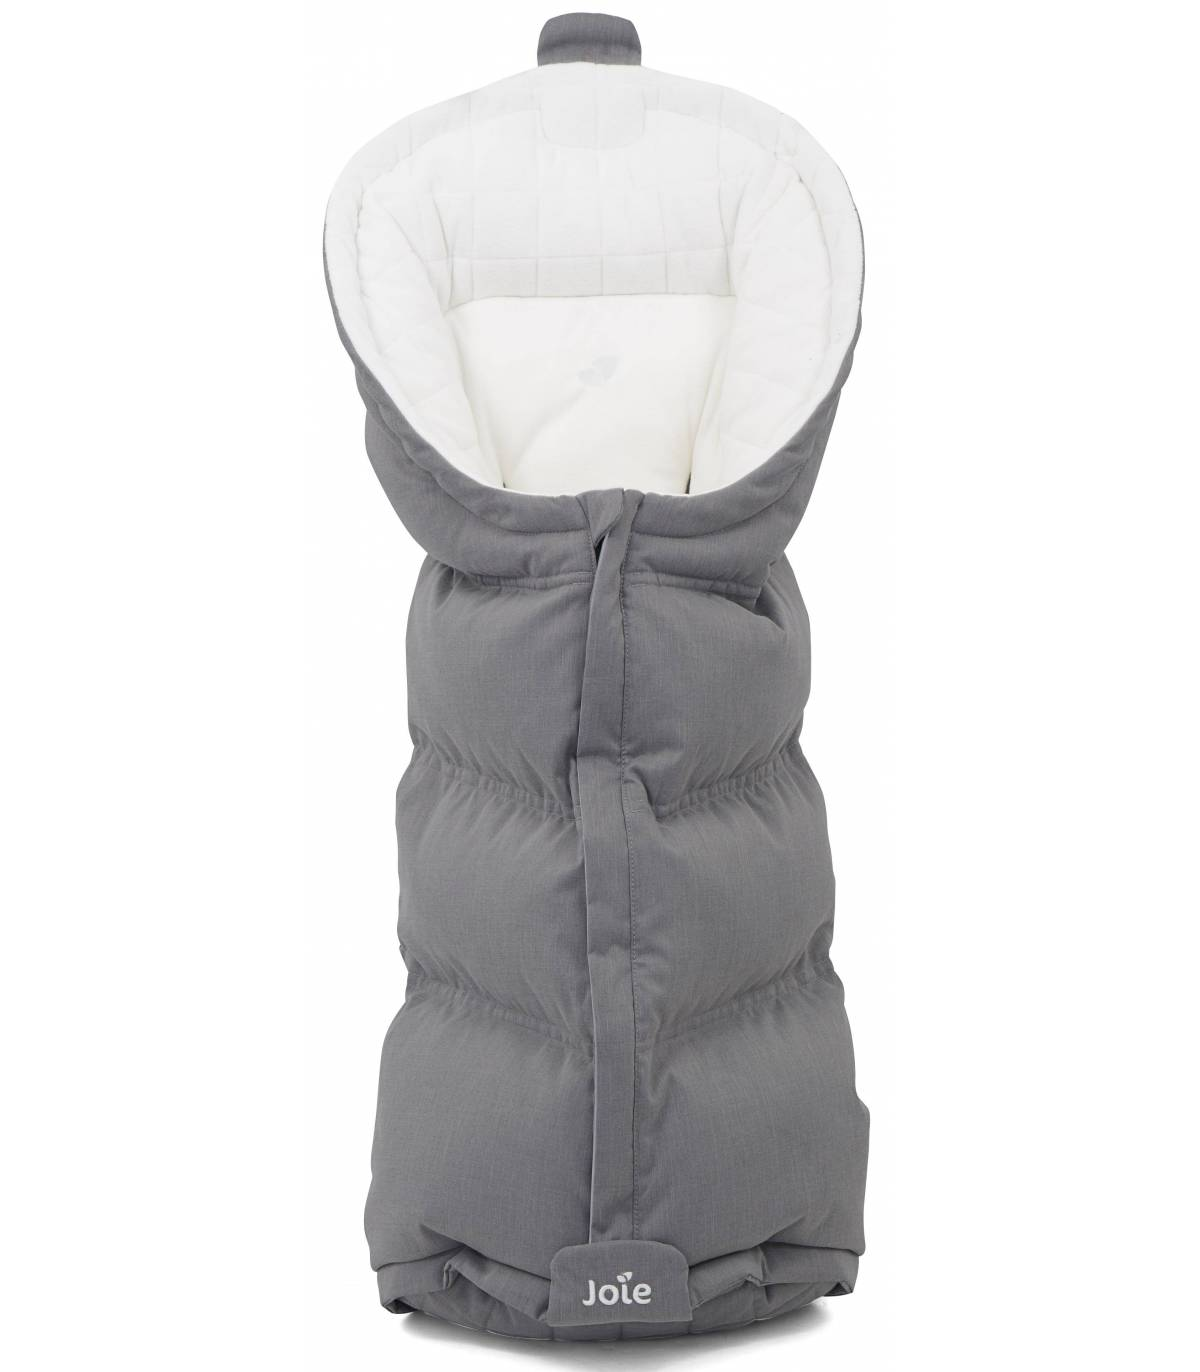 Joie Therma Winter-Fusssack Gray Flannel